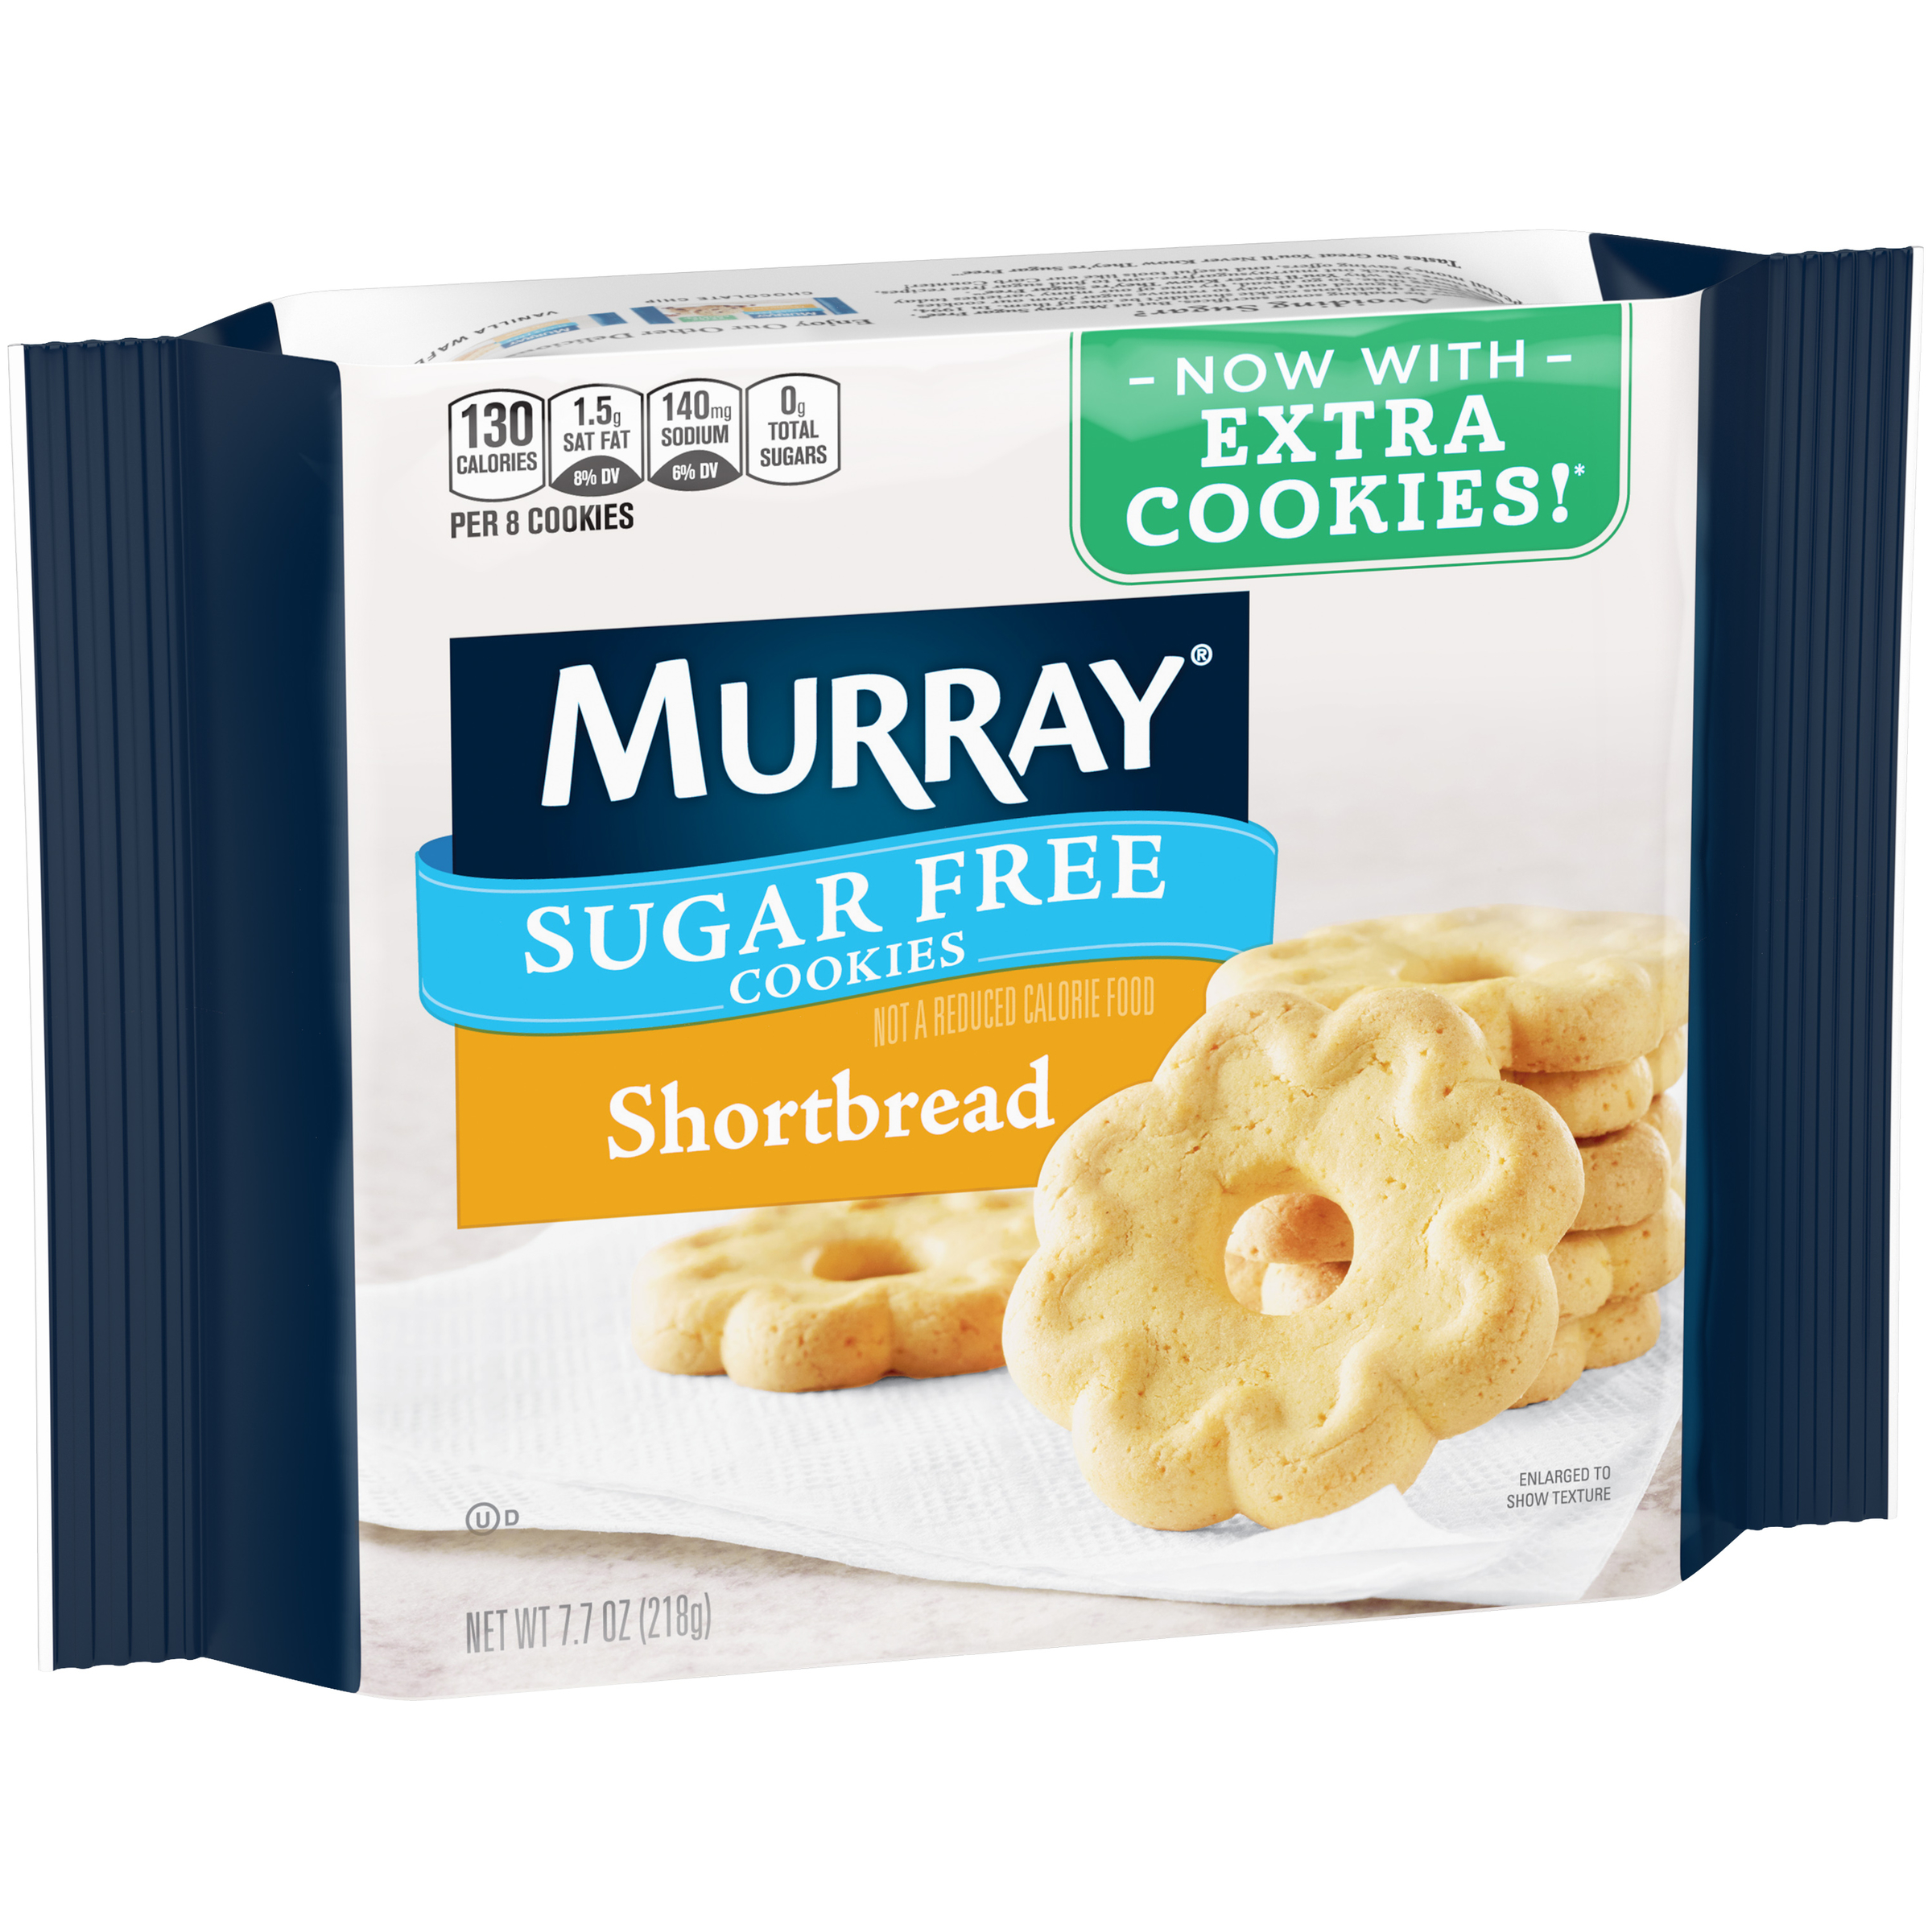 Murray Sugar Free Shortbread Cookies 7.7 oz. Pack